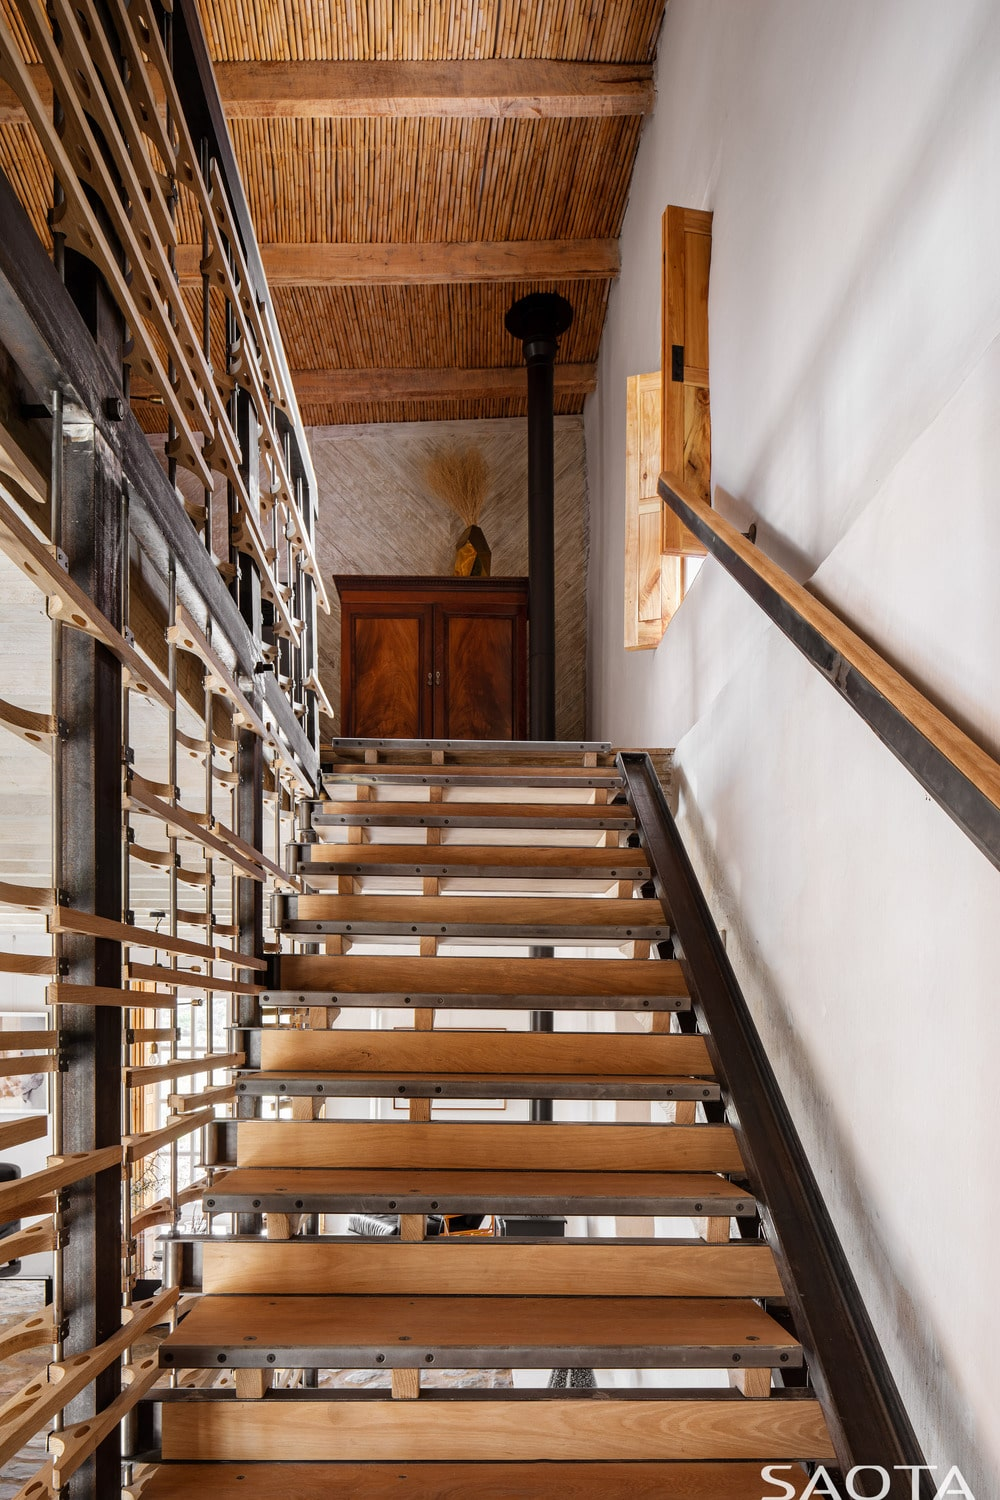 This is a look up the staircase with wooden steps, a wooden window on the side and wooden dresser at the landing above.